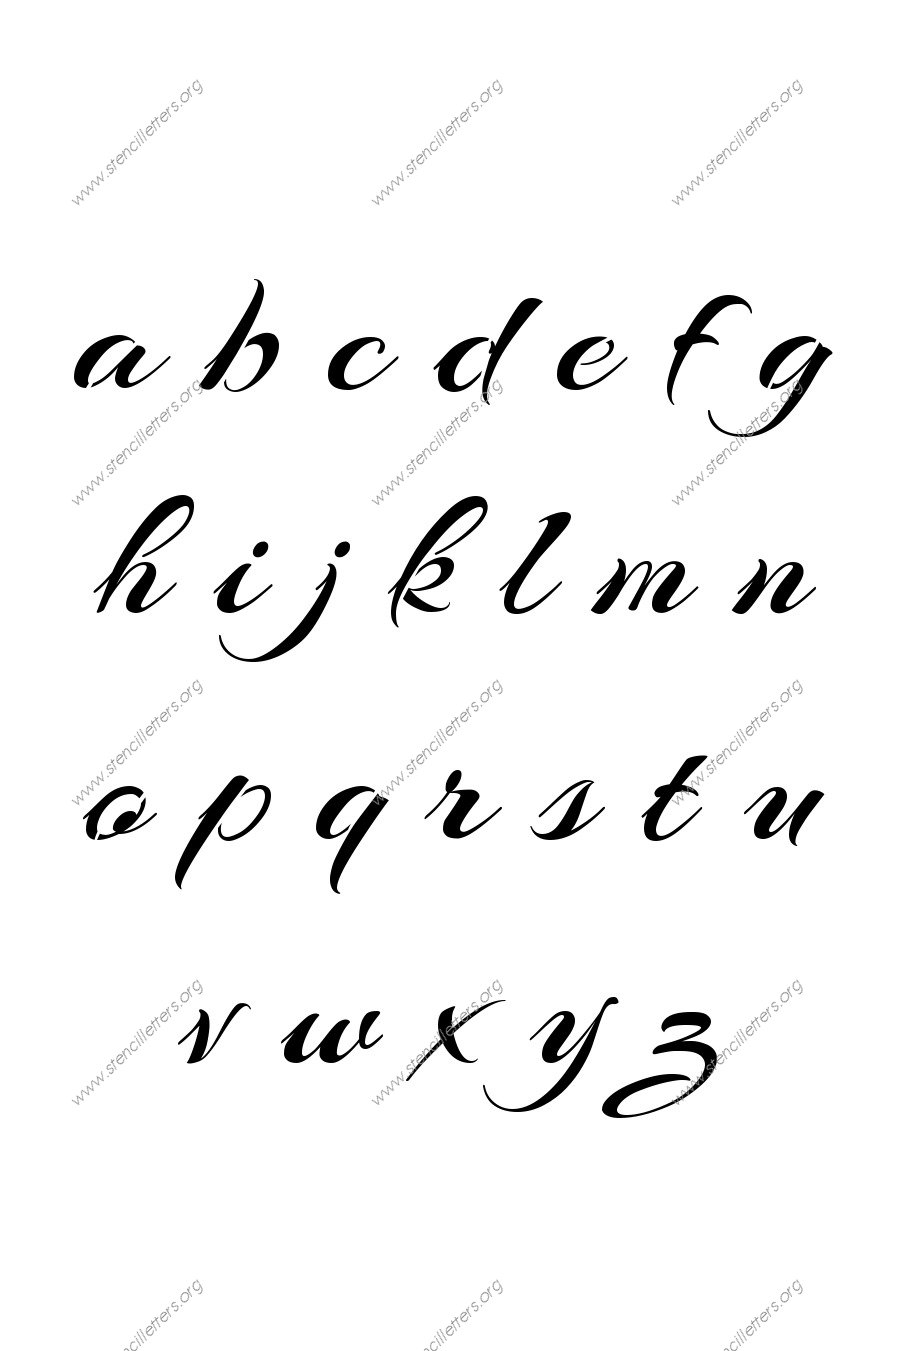 Brushed Cursive A to Z lowercase letter stencils